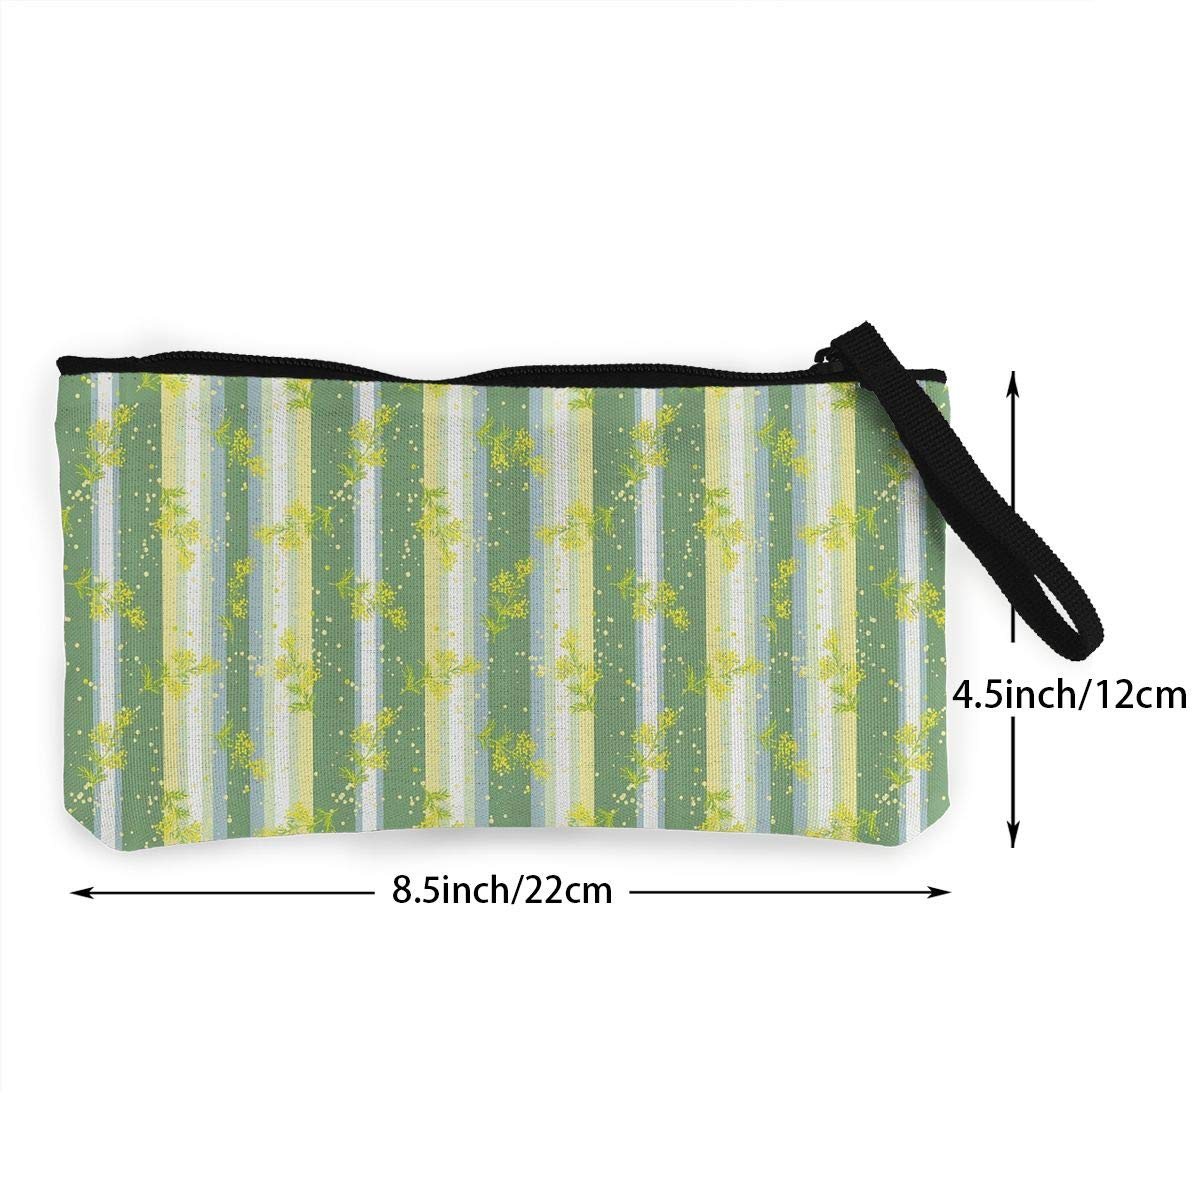 Make Up Bag,Cellphone Bag With Handle Mimosa Spring Flower Leaves Zipper Canvas Coin Purse Wallet